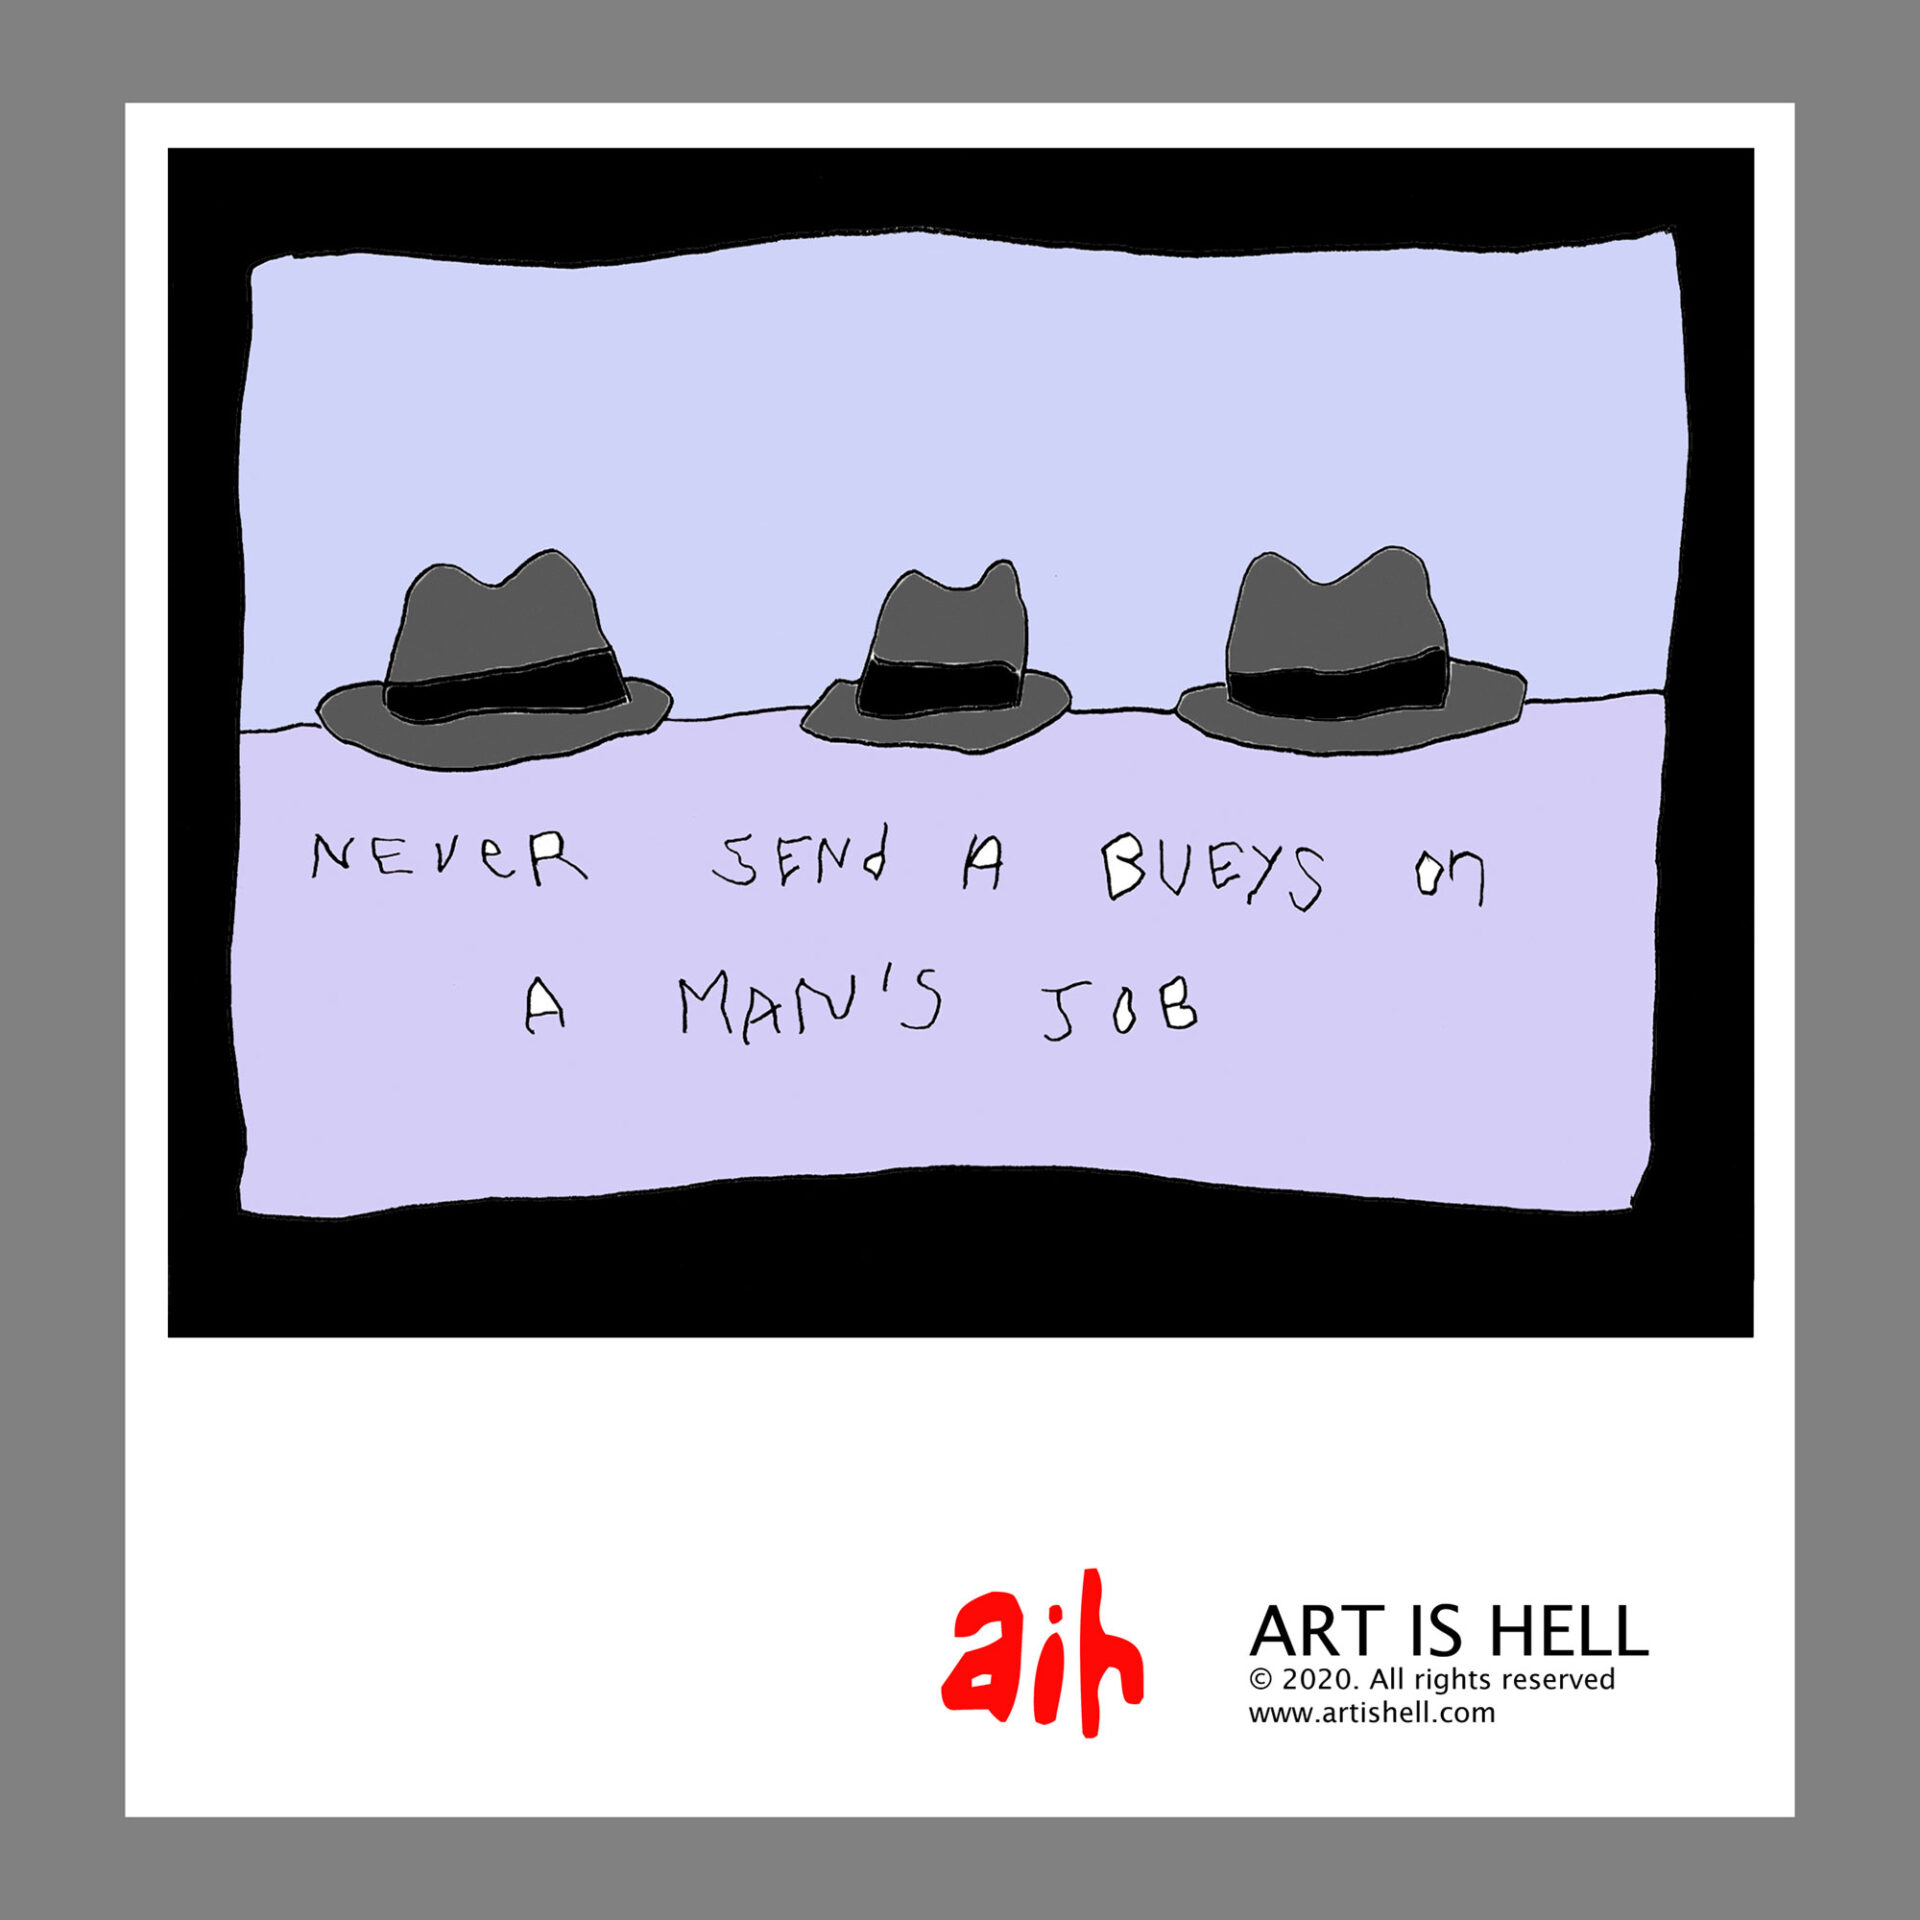 Never Send A Beuys on a Man's Job (purple). 24 x 20 inch poster. CA$ 30.00